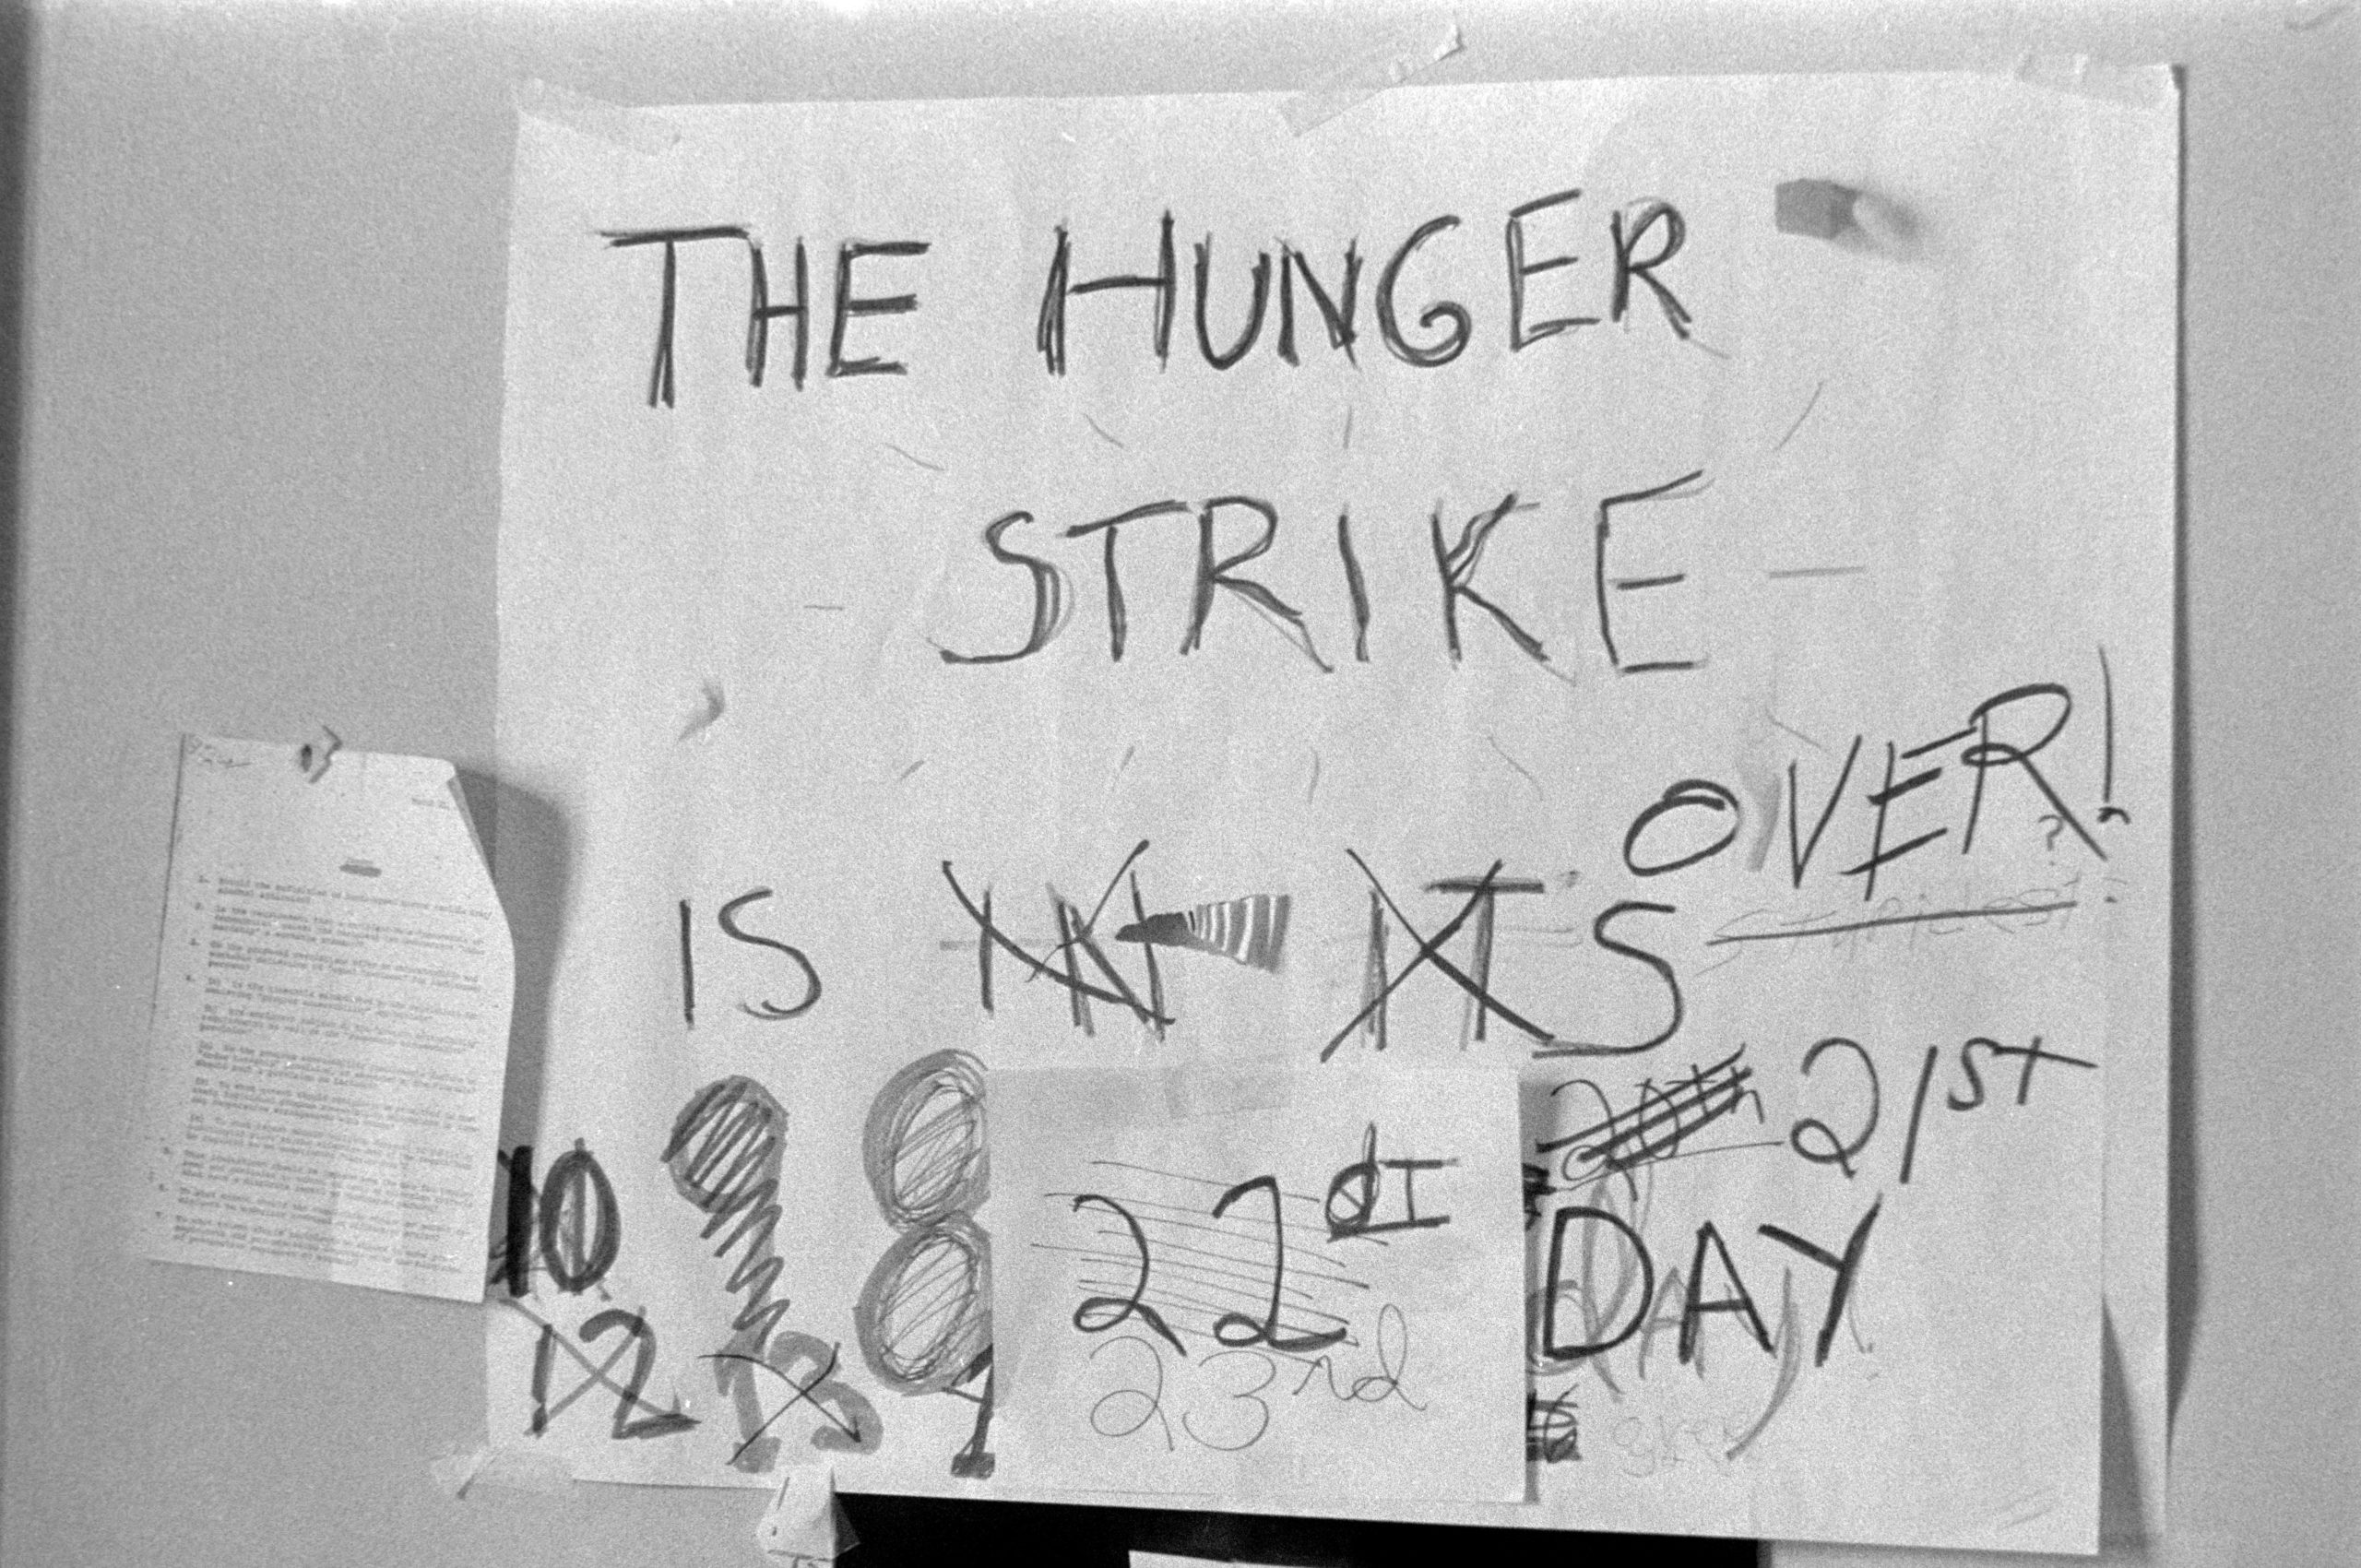 "A sign counting the days of a hunger strike. The length of the hunger strike was updated, reaching up to the 23rd day. This has all been crossed out and the sign now reads ""The hunger strike is over""."